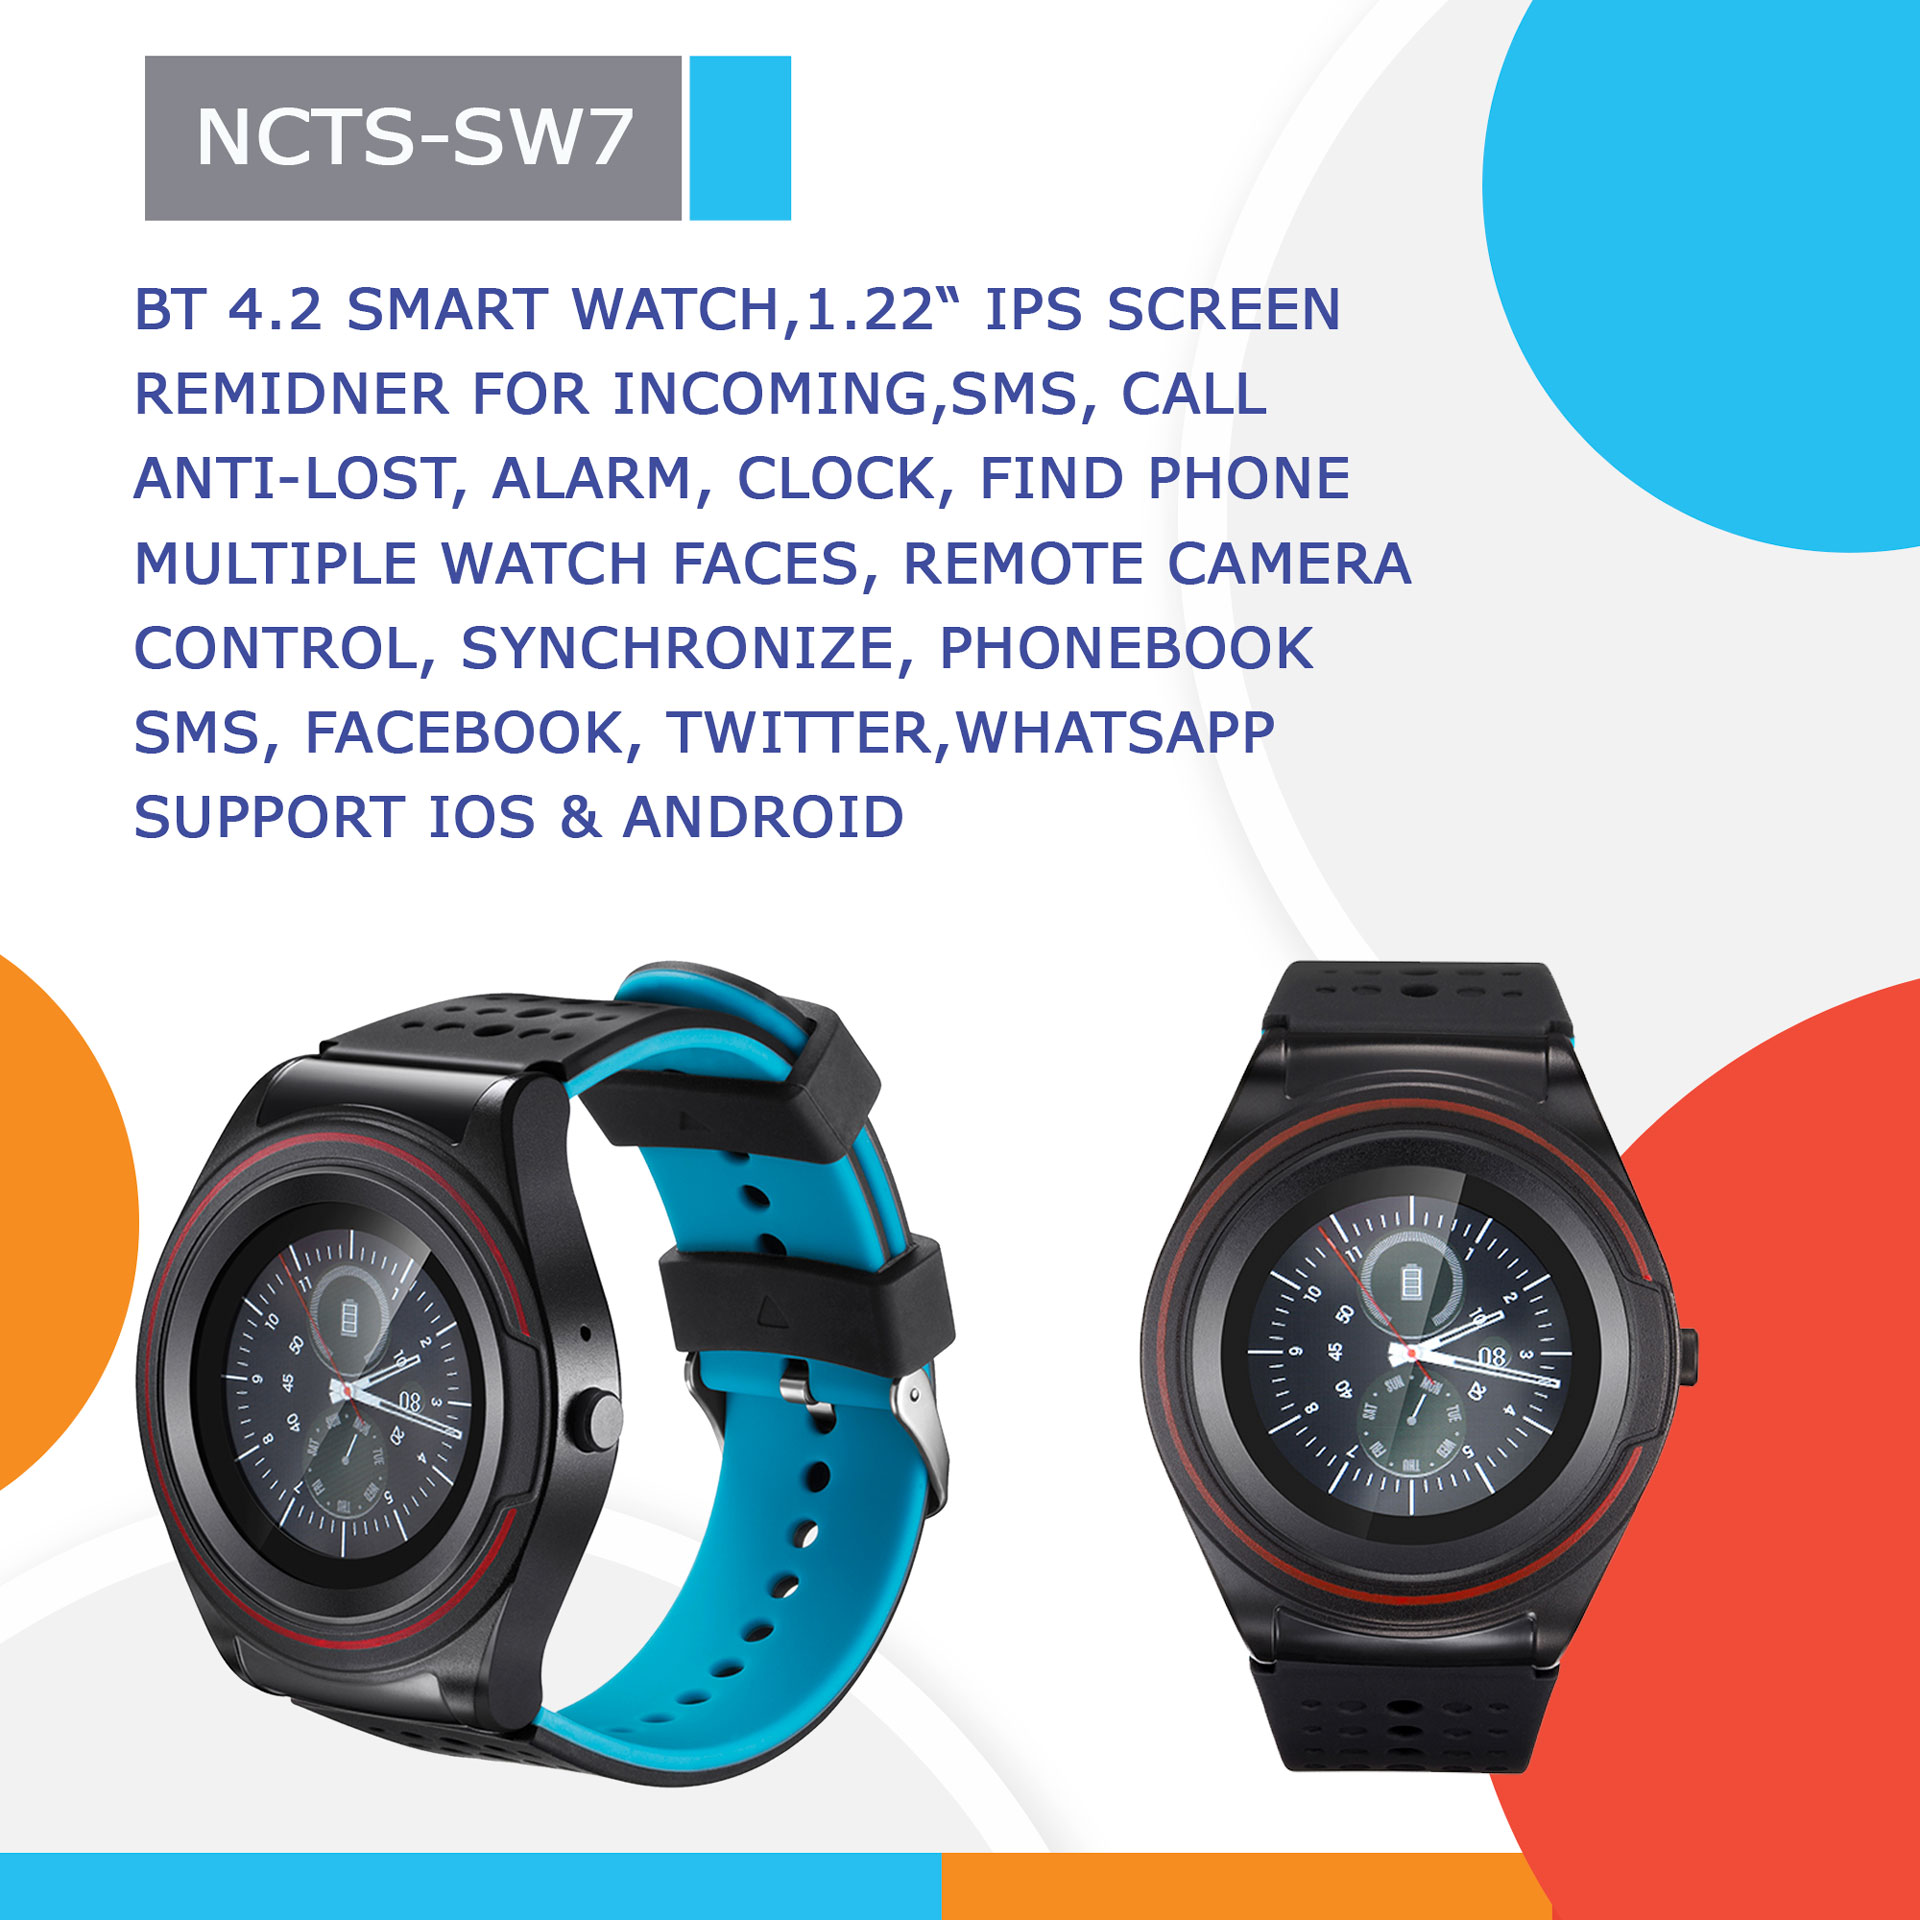 NCTS-SW7